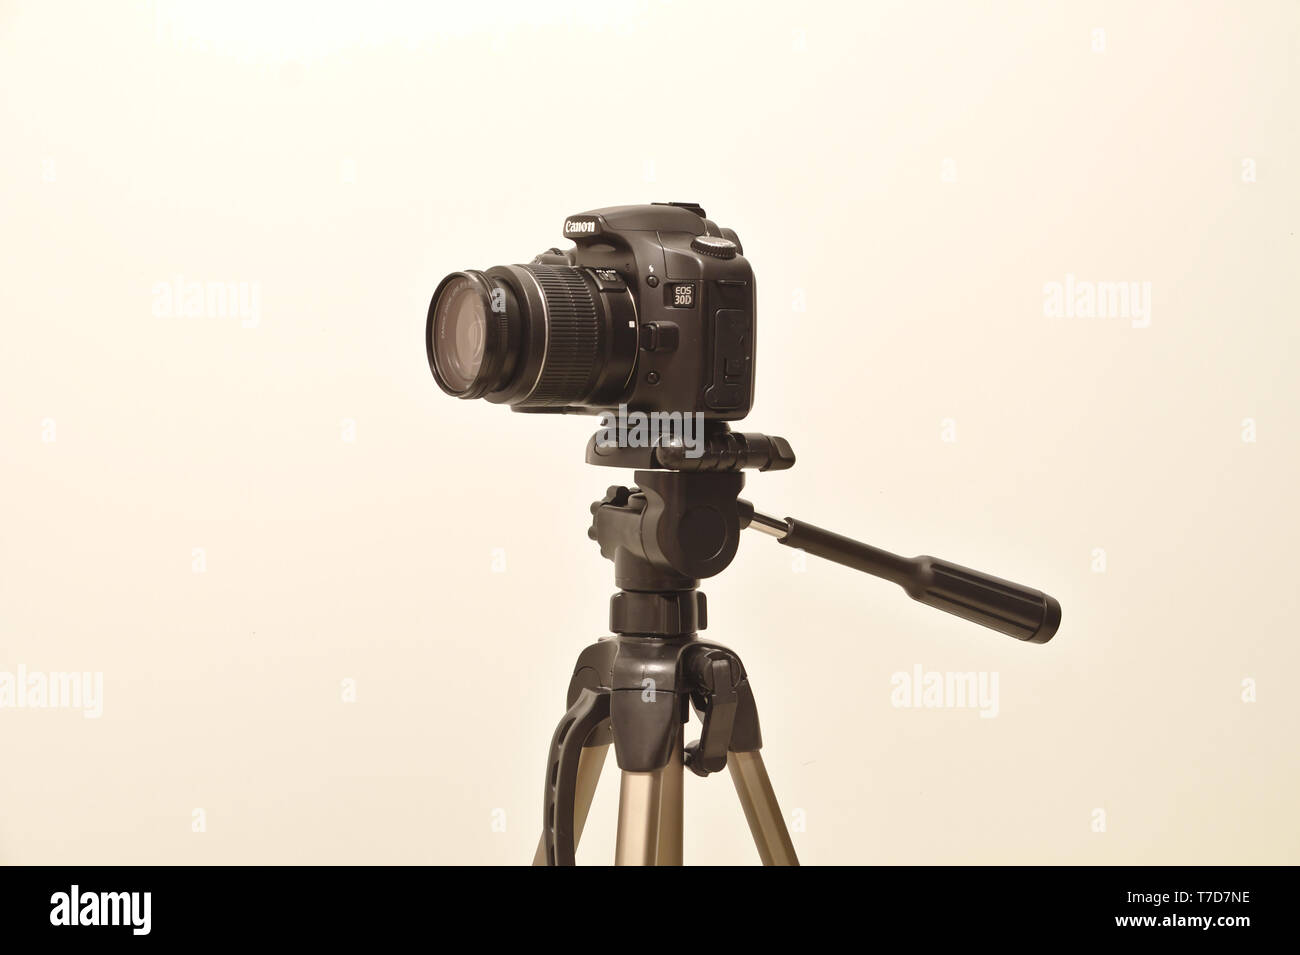 Canon 30D digital camera on tripod with Canon EF-S18-55mm lens attached. Photo taken 05/2018 in Espoo, Finland - Stock Image